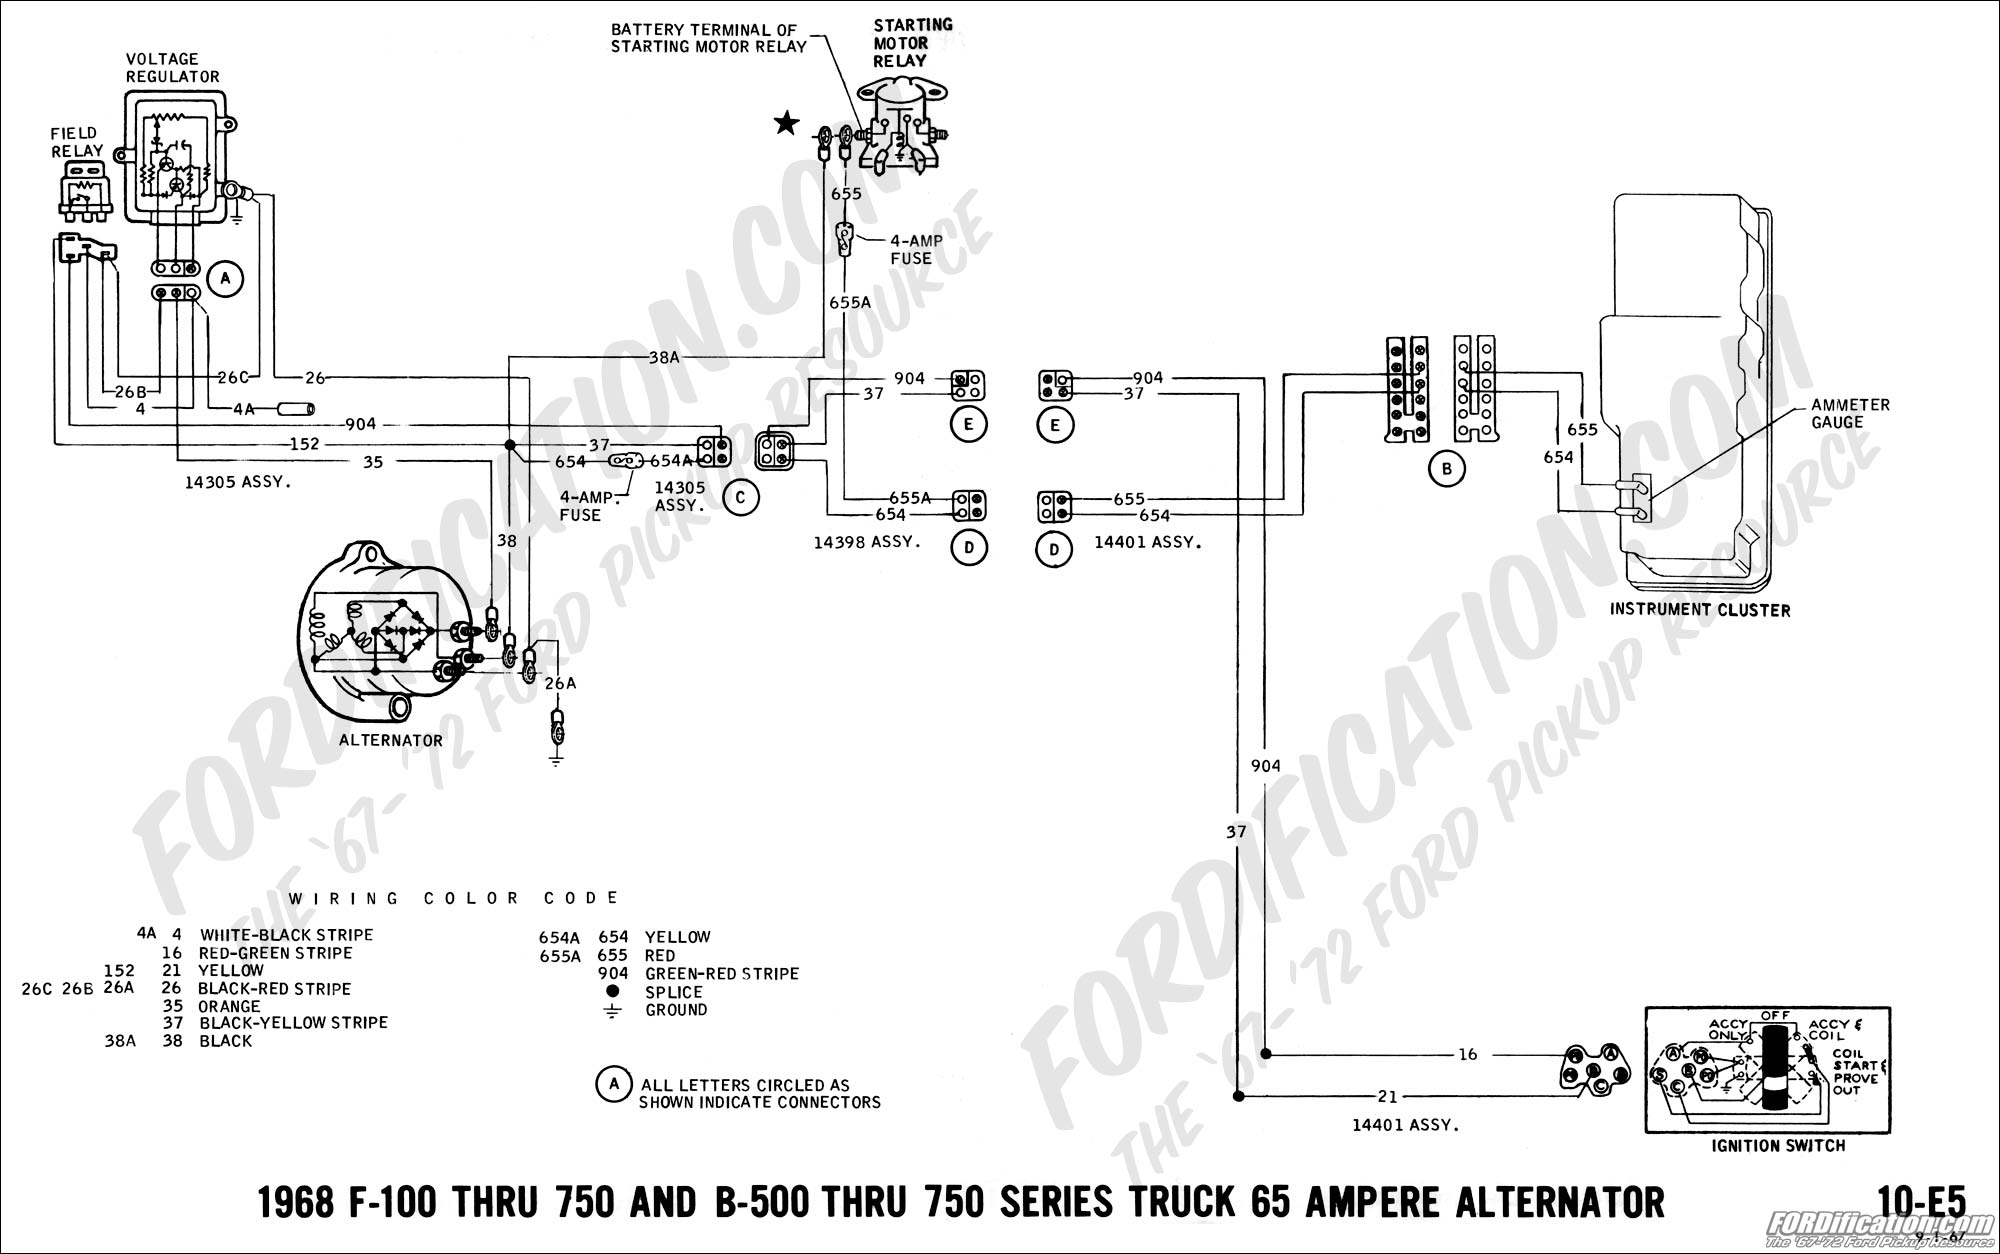 [DIAGRAM_5NL]  1999 Ford F750 Fuse Diagram | Wiring Library | Free Download Rg7321 Wiring Diagram |  | 55.hogerteknologerna.org